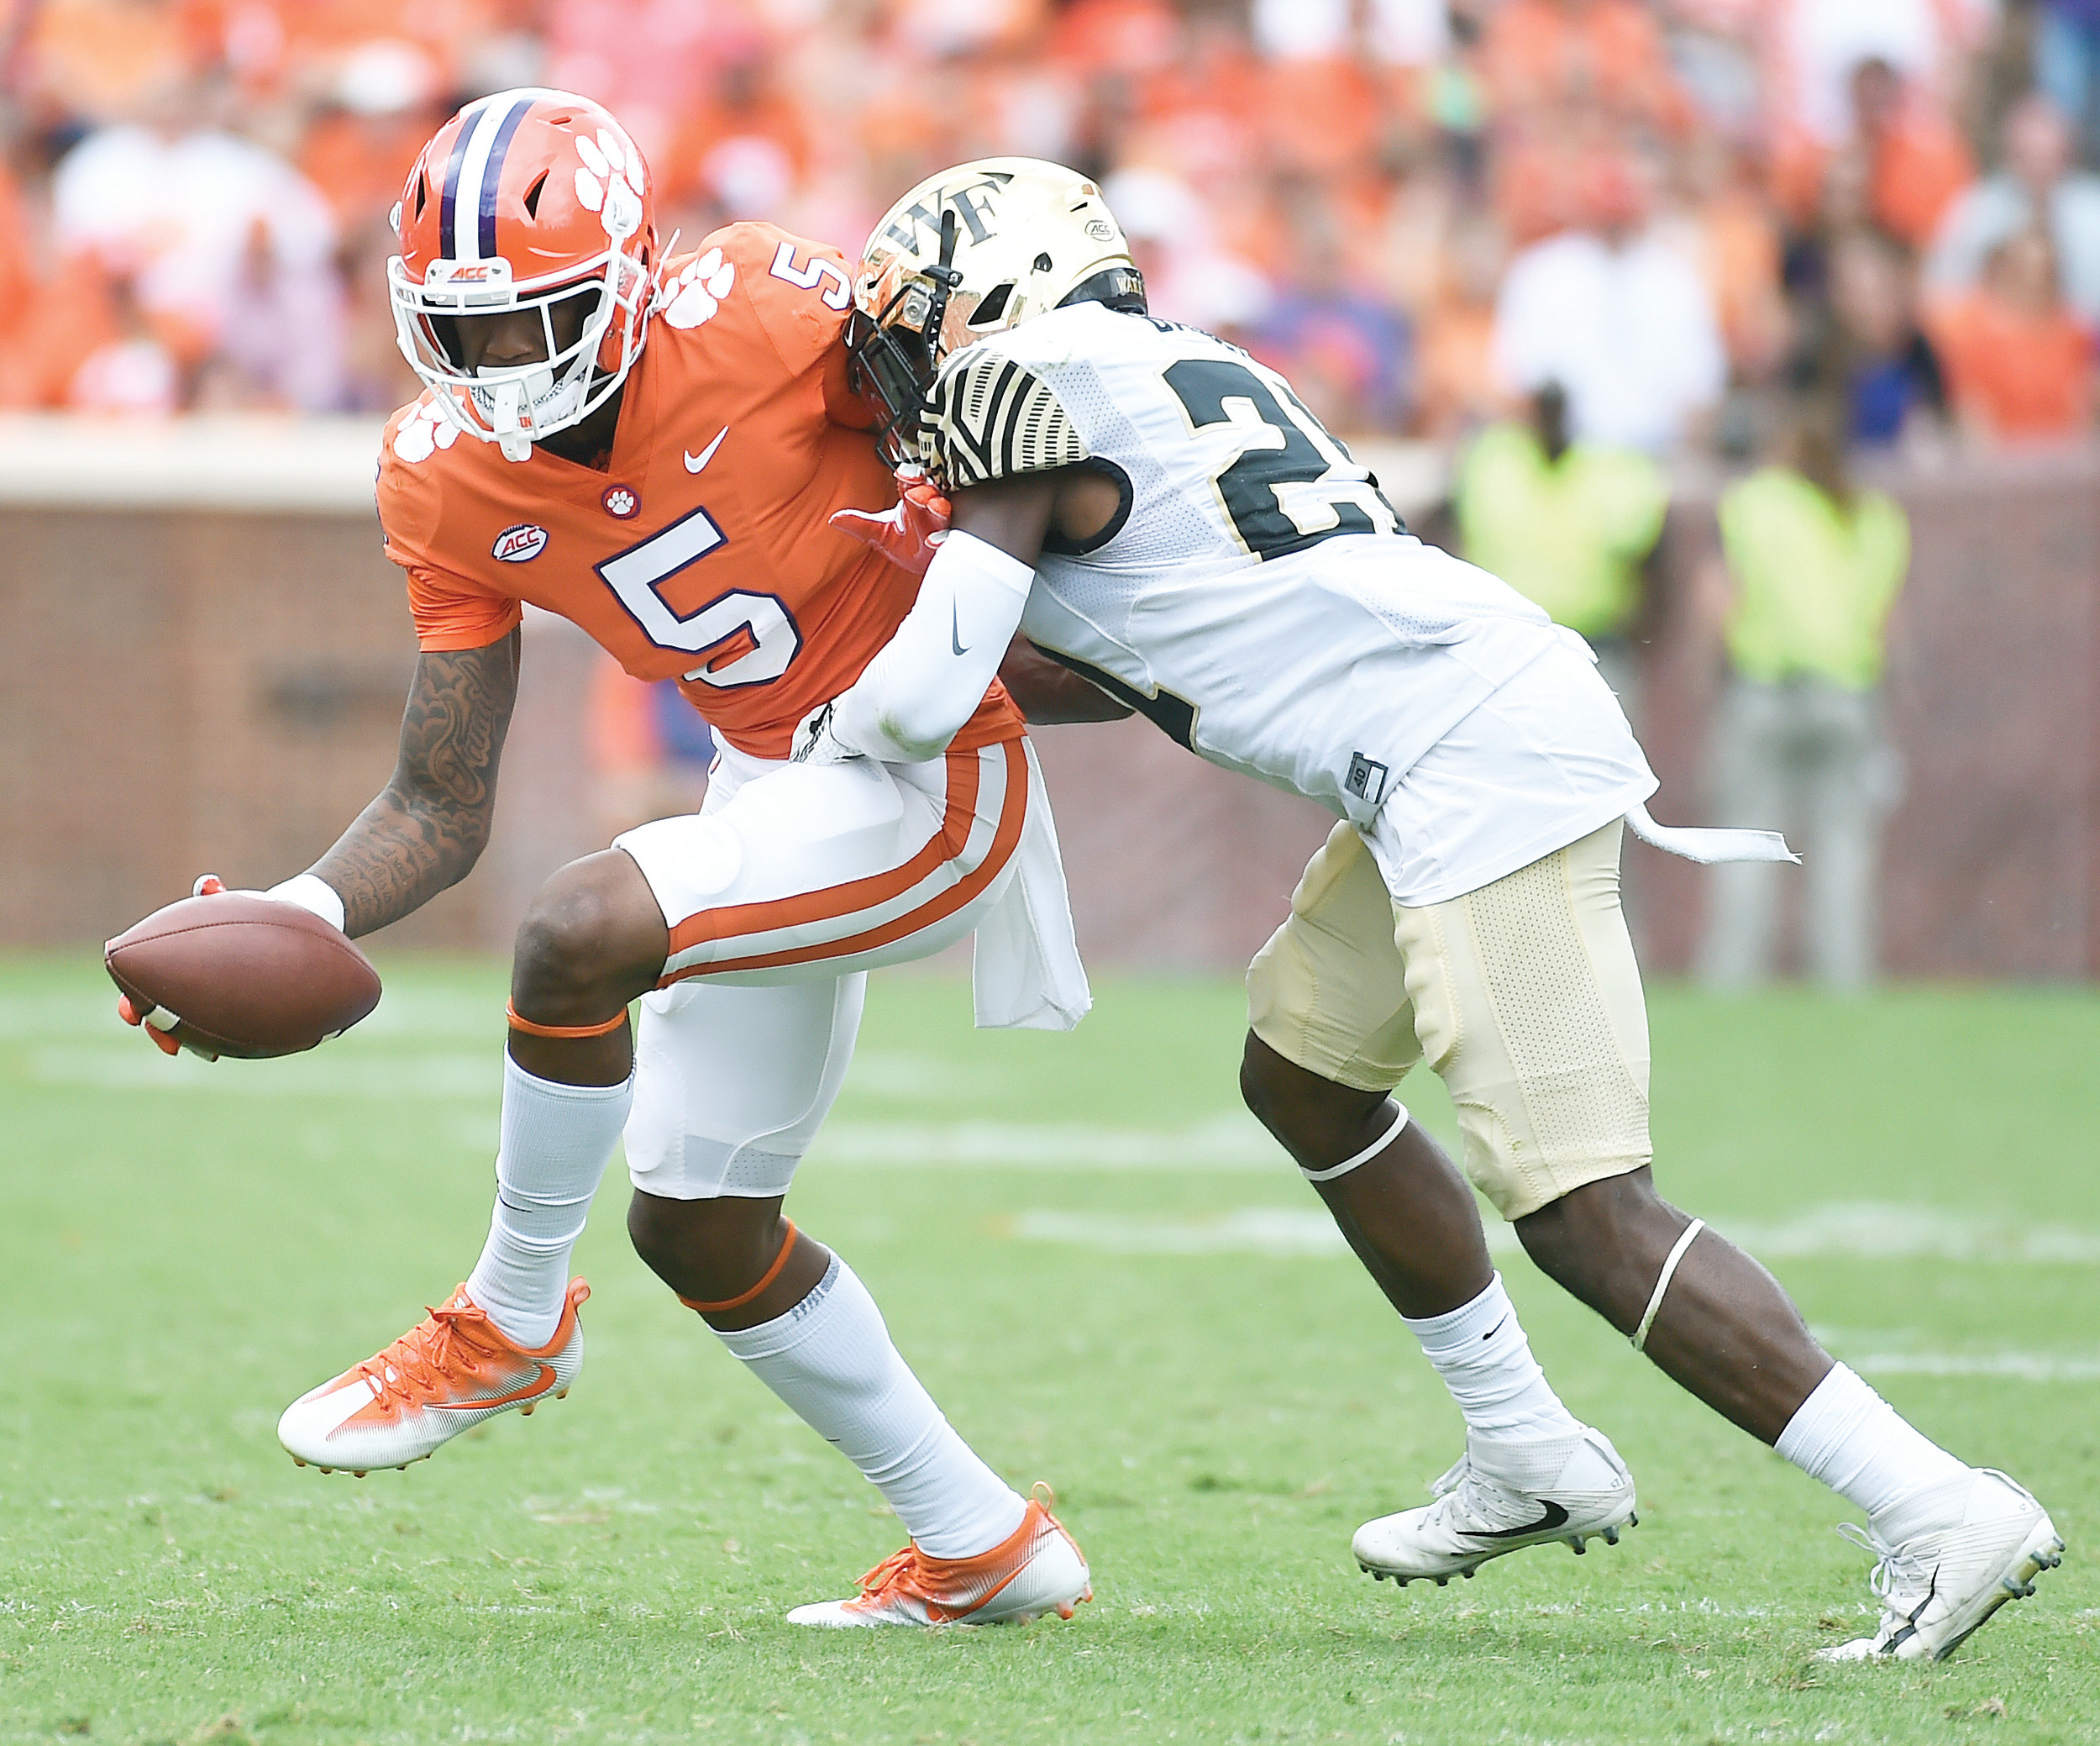 Clemson wide receiver Tee Higgins (5) tries to break free from Wake Forest defensive back Essang Bassey (21) during the Tigers' 28-14 victory on Saturday at Memorial Stadium in Clemson.